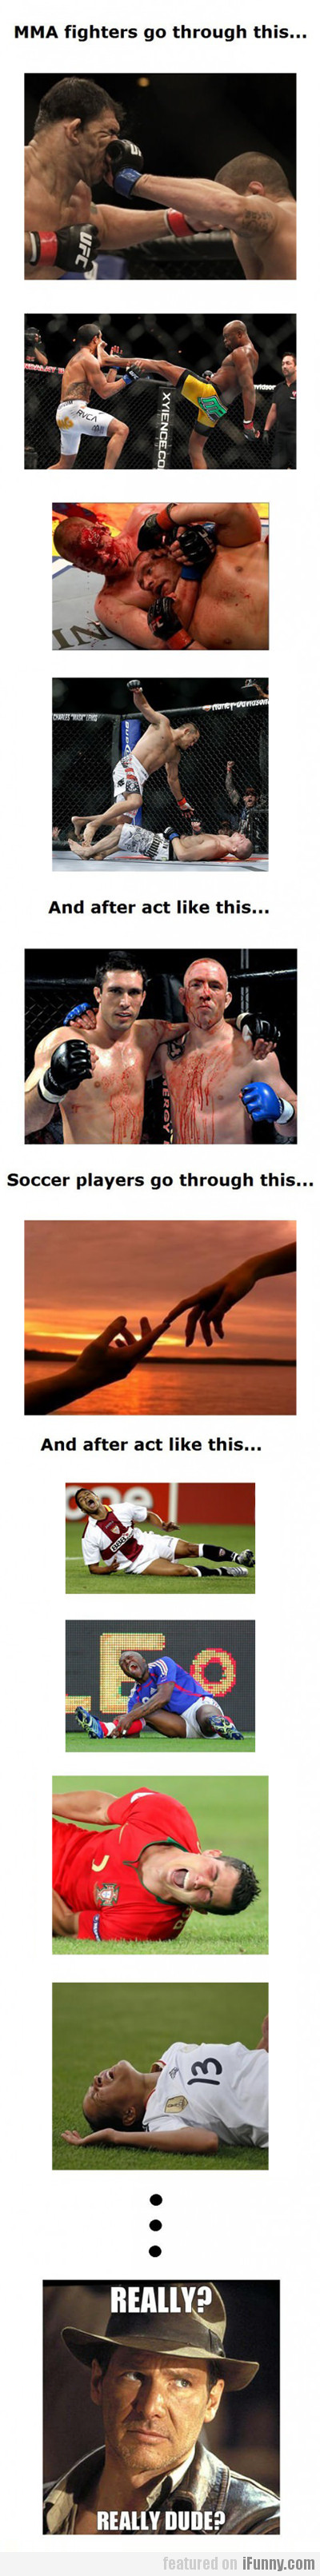 mma fighters vs. soccer players